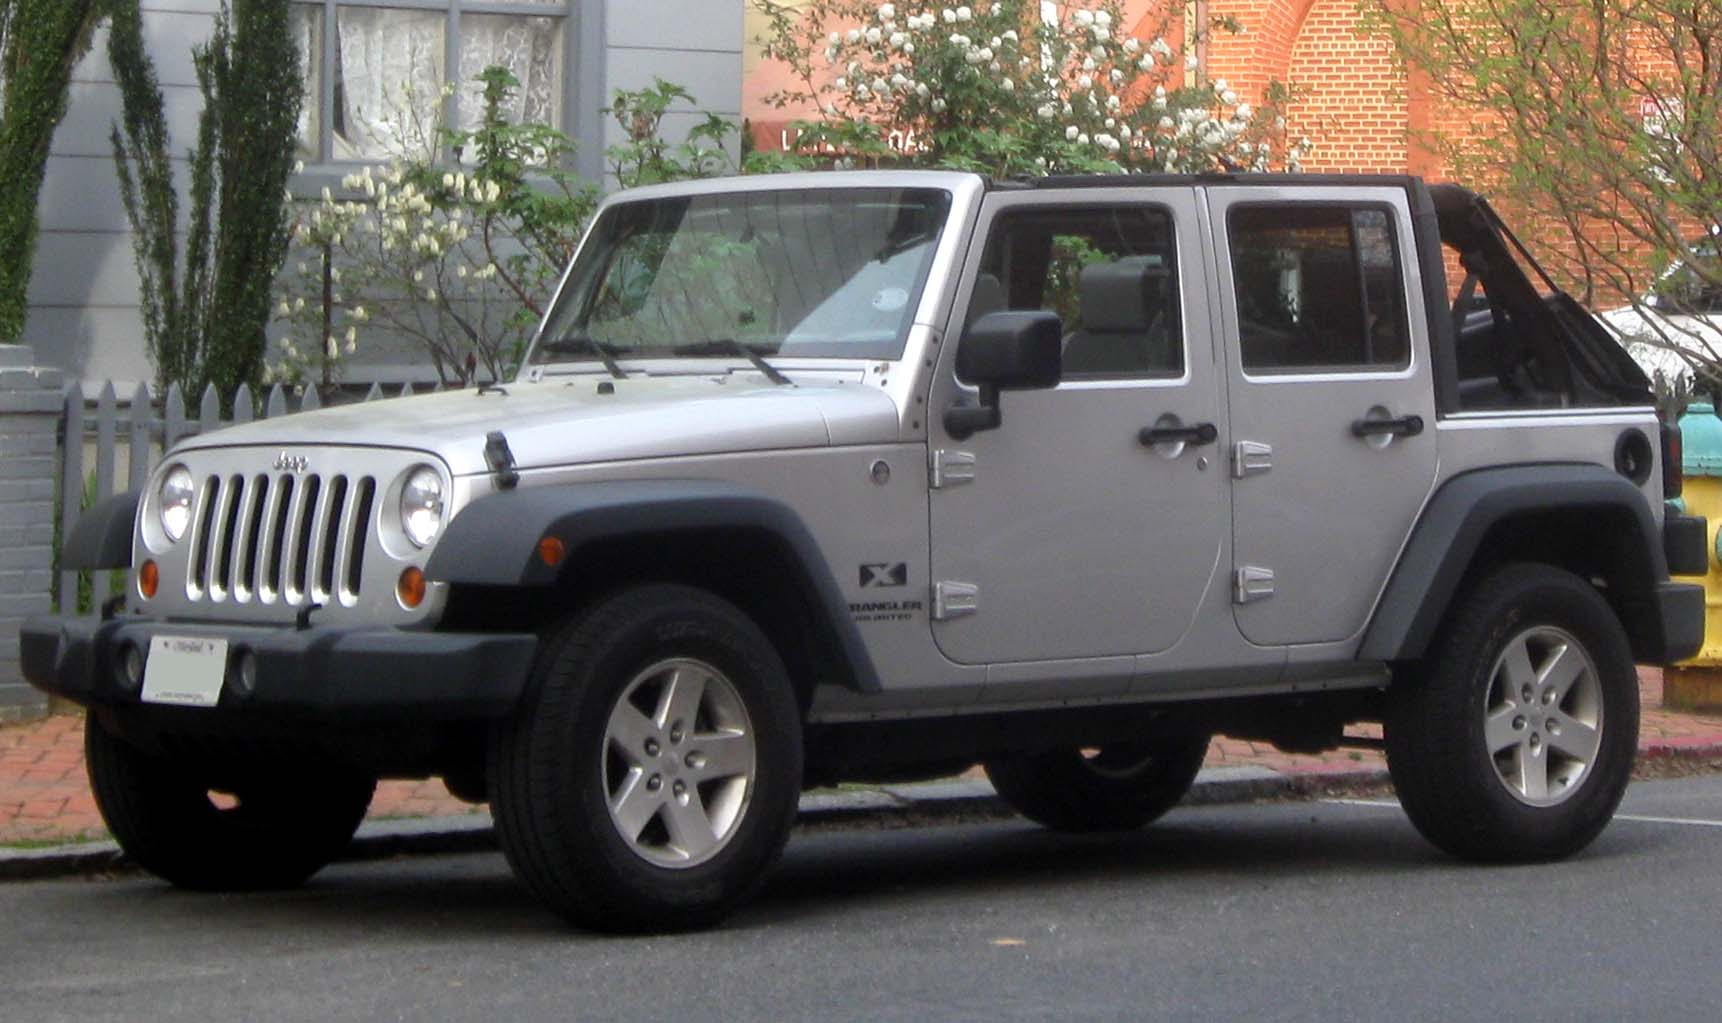 File:Jeep Wrangler Unlimited X -- 04-07-2010.jpg